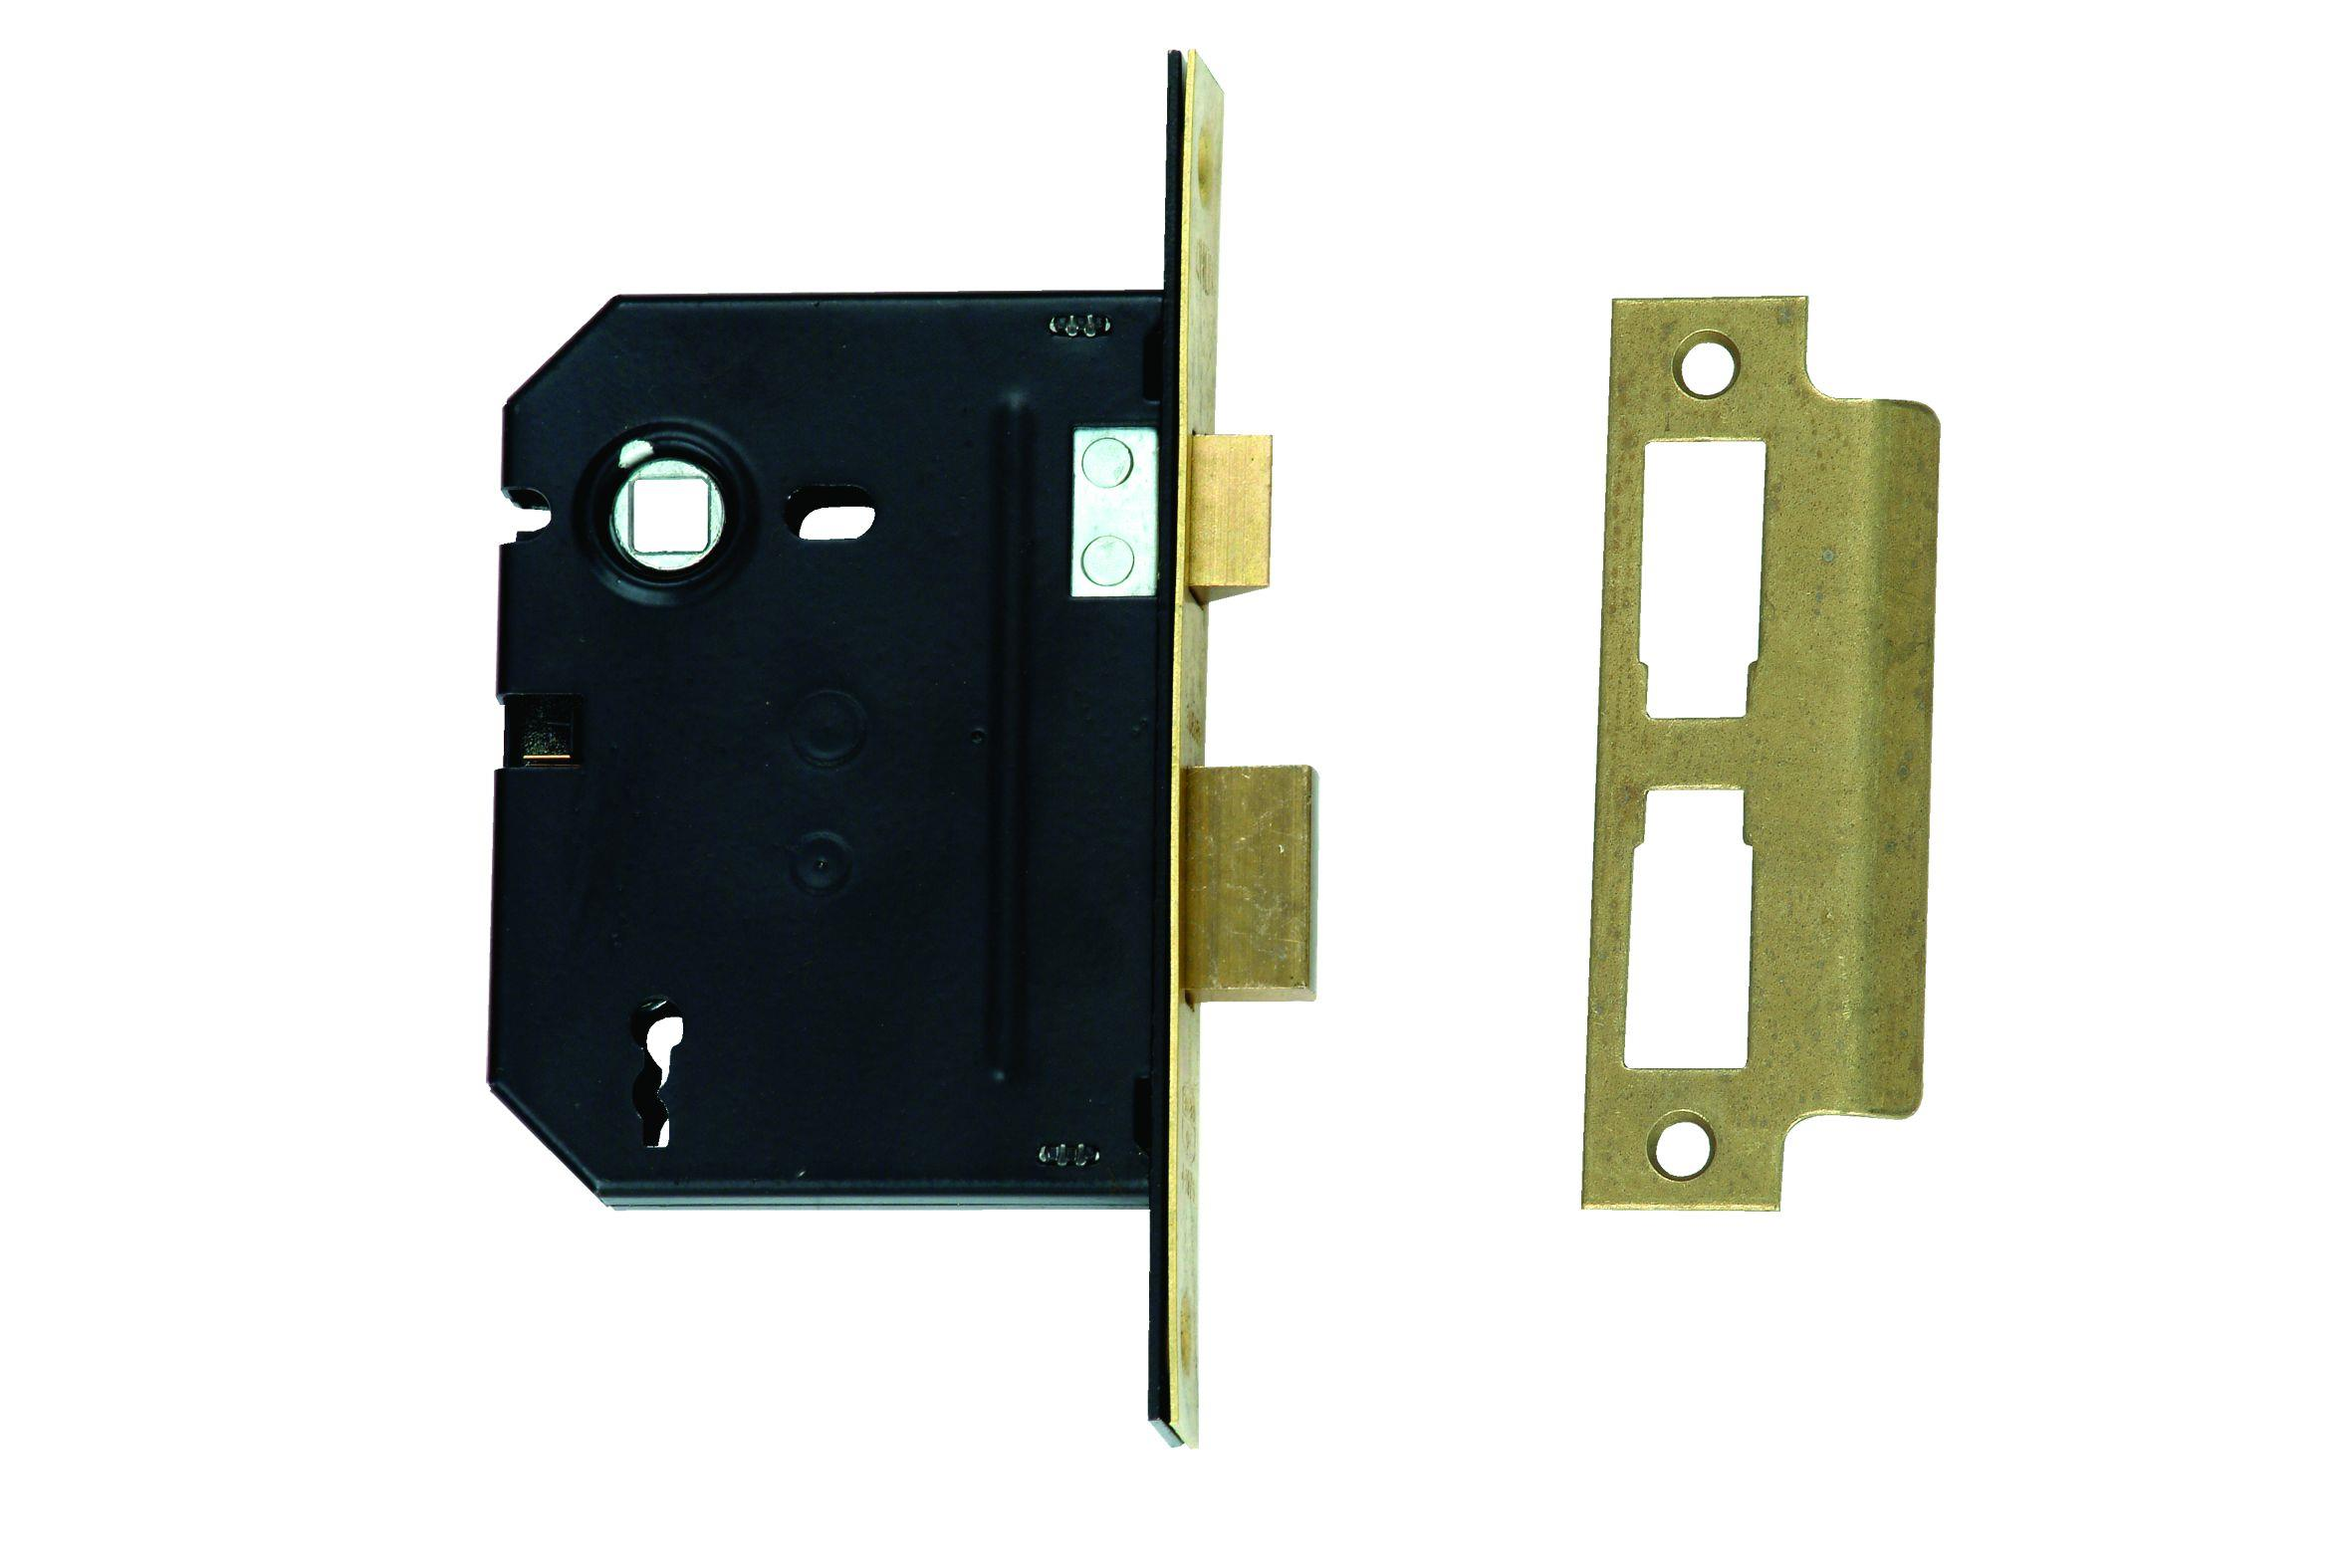 2252-76 - 3 Lever Upright Lock